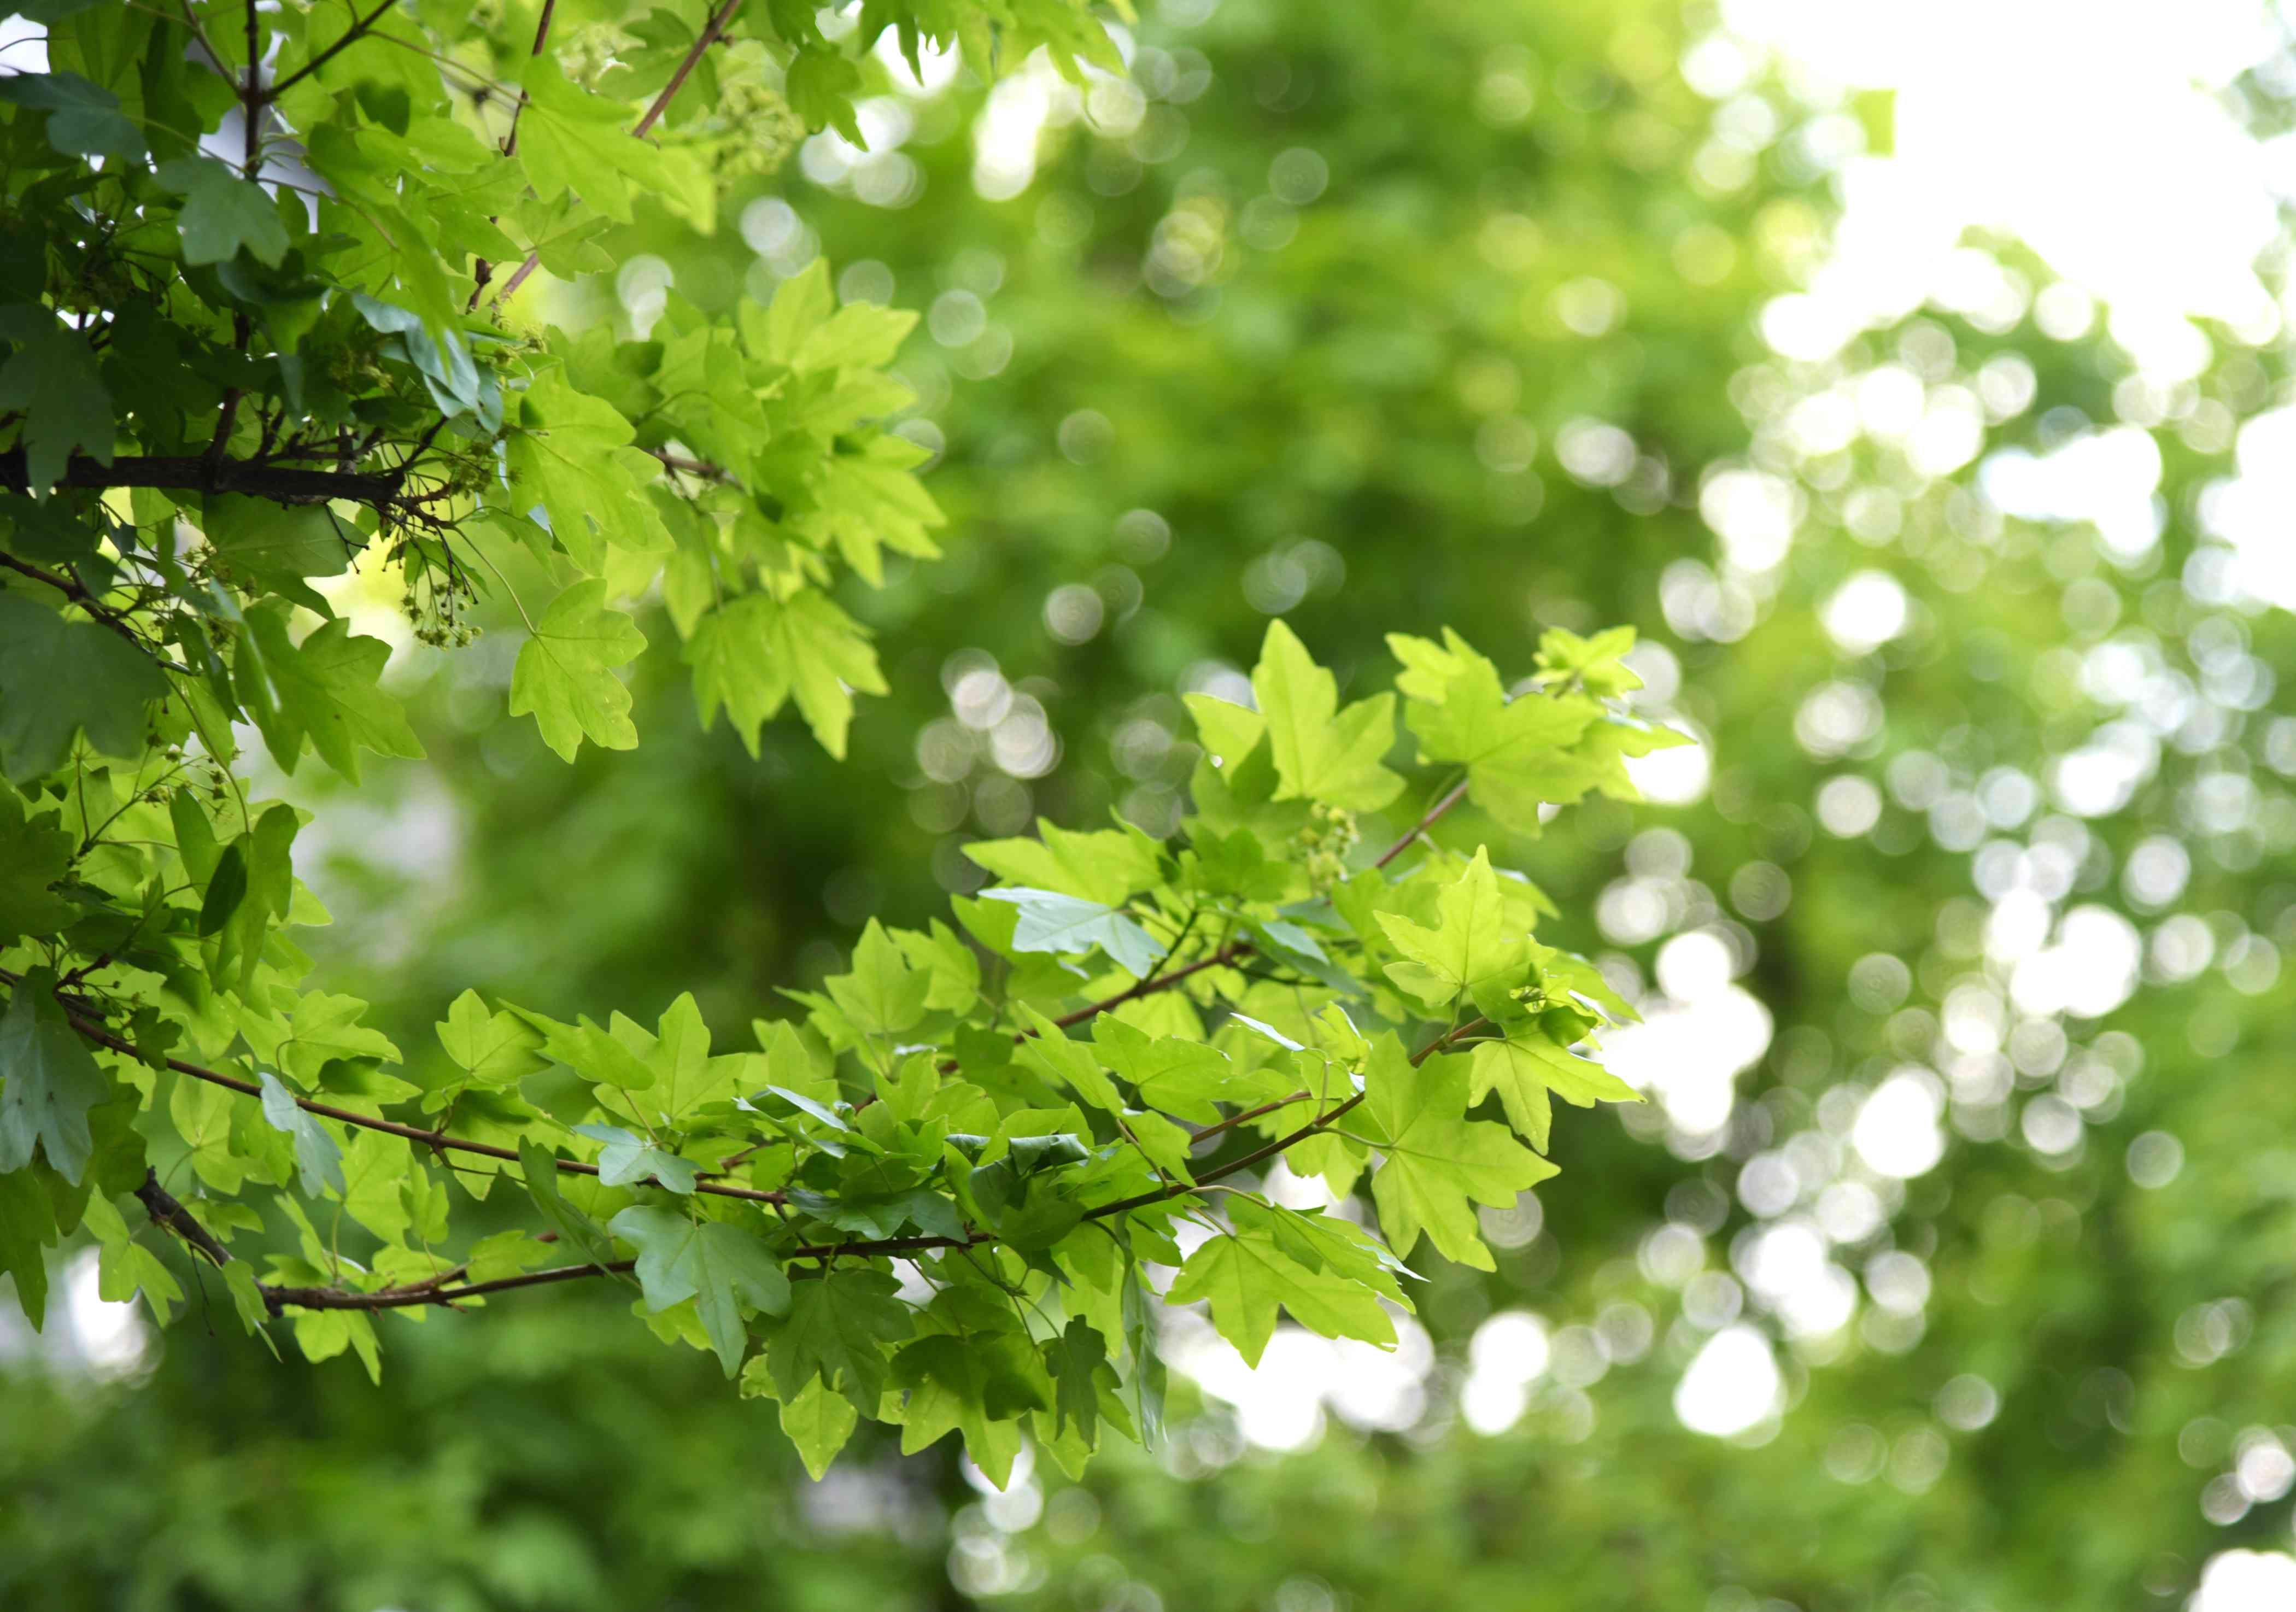 Hedge maple tree branches with bright green leaves closeup